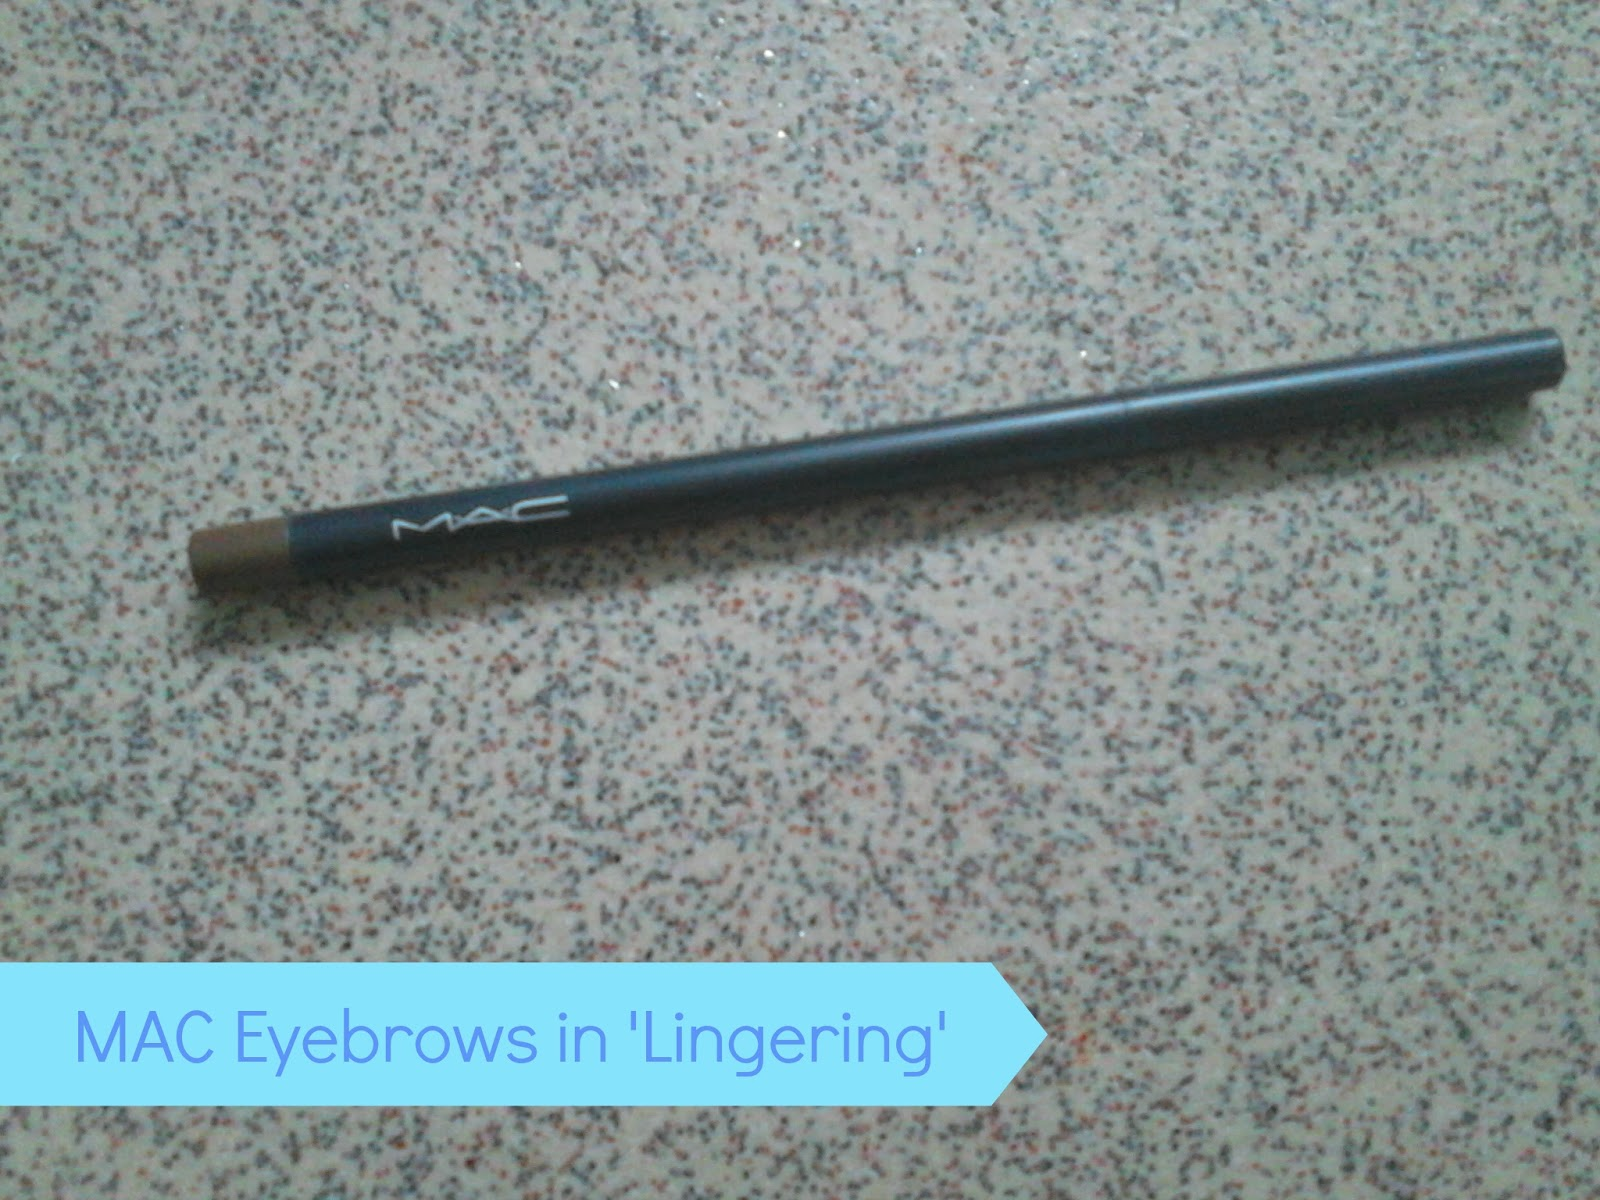 MAC Eyebrow Pencil in Lingering